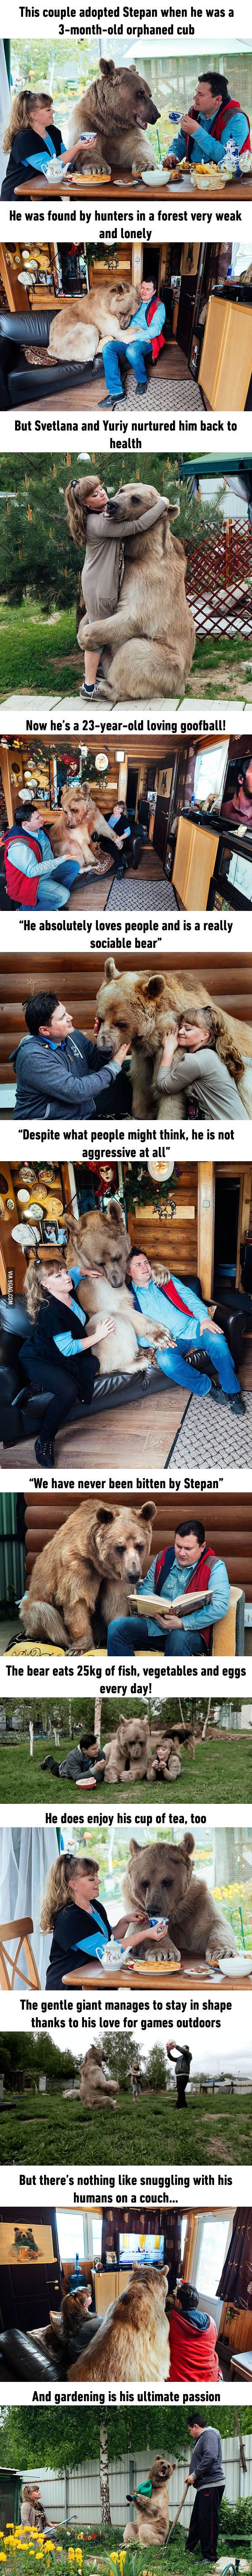 Russian Couple Adopted An Orphaned Bear 23 Years Ago, And They Are Still Living Happily Together